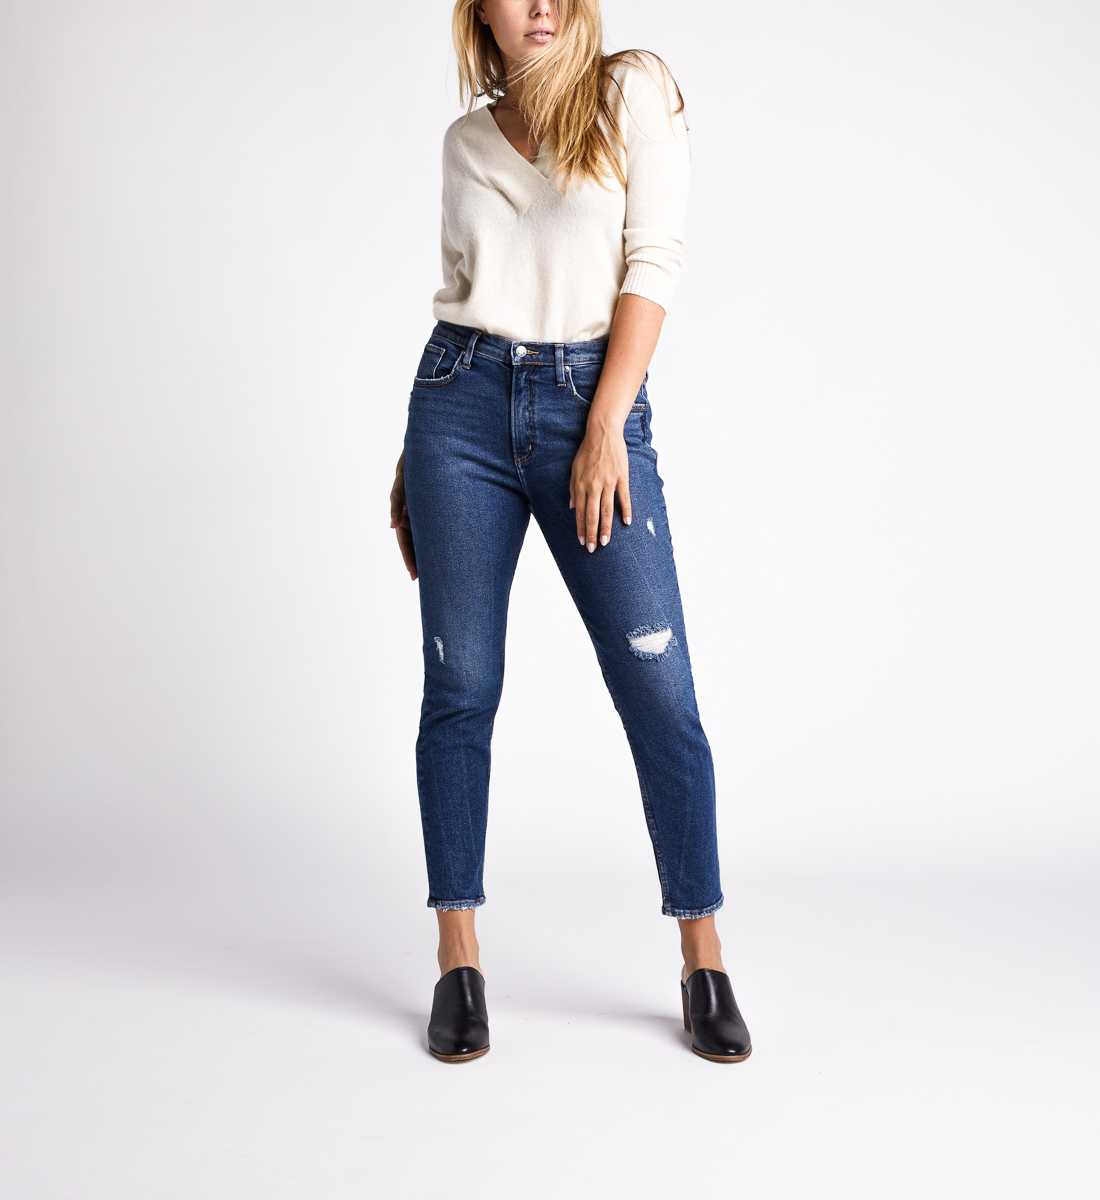 Frisco High Rise Skinny Leg Jeans,Indigo Front